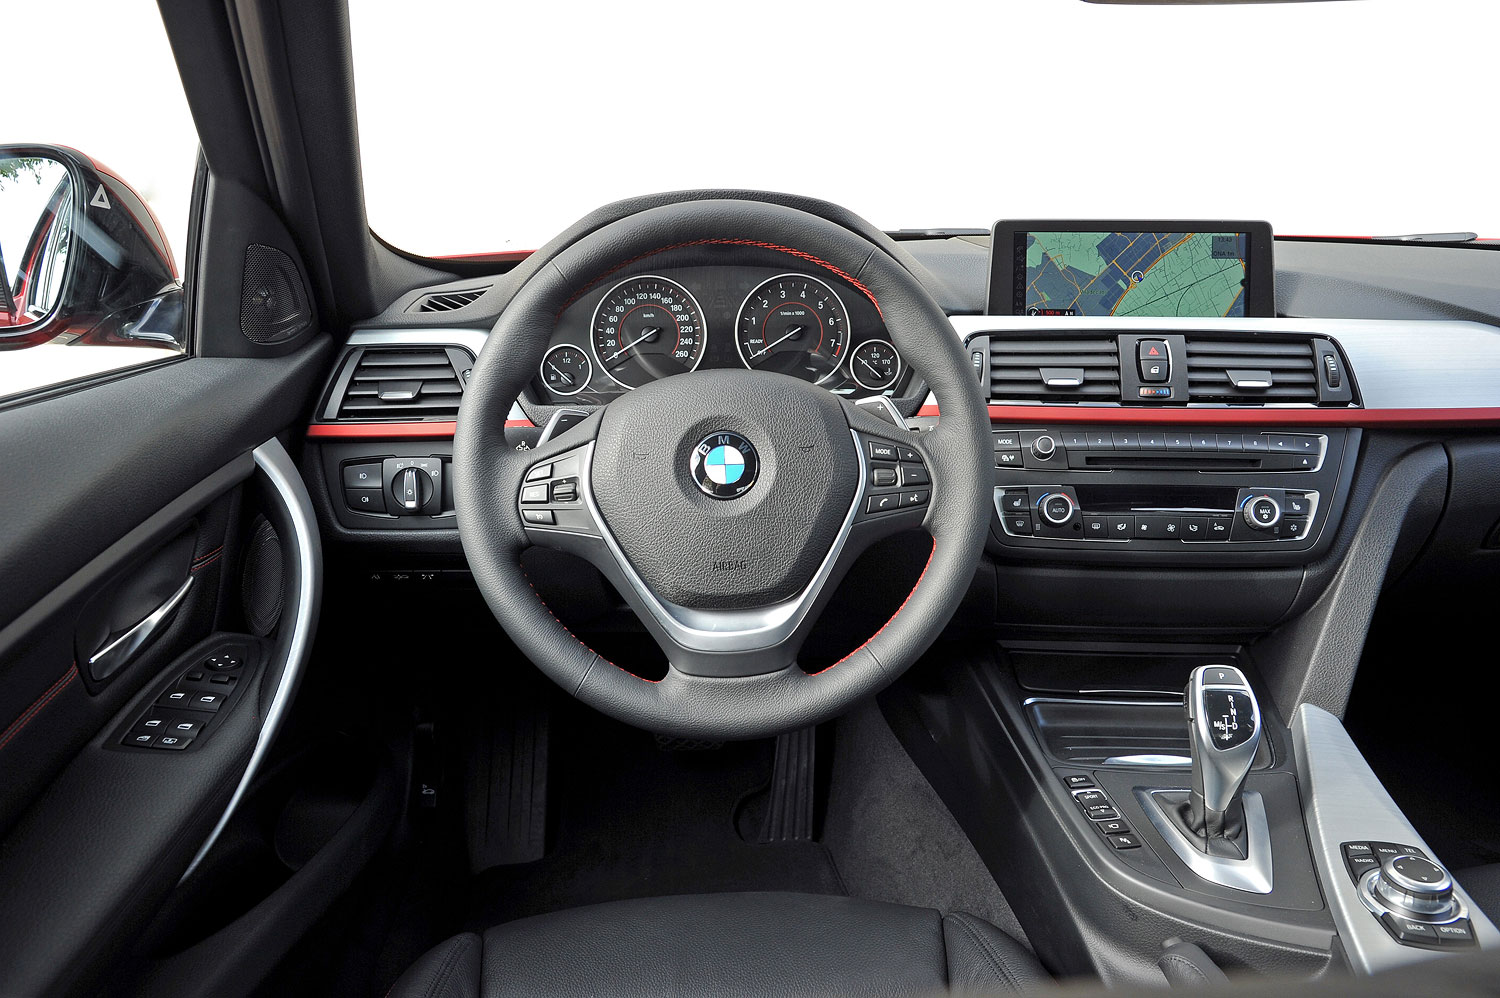 Akzentleisten wechsel f30 f30 facelift interieur for Interieur sport